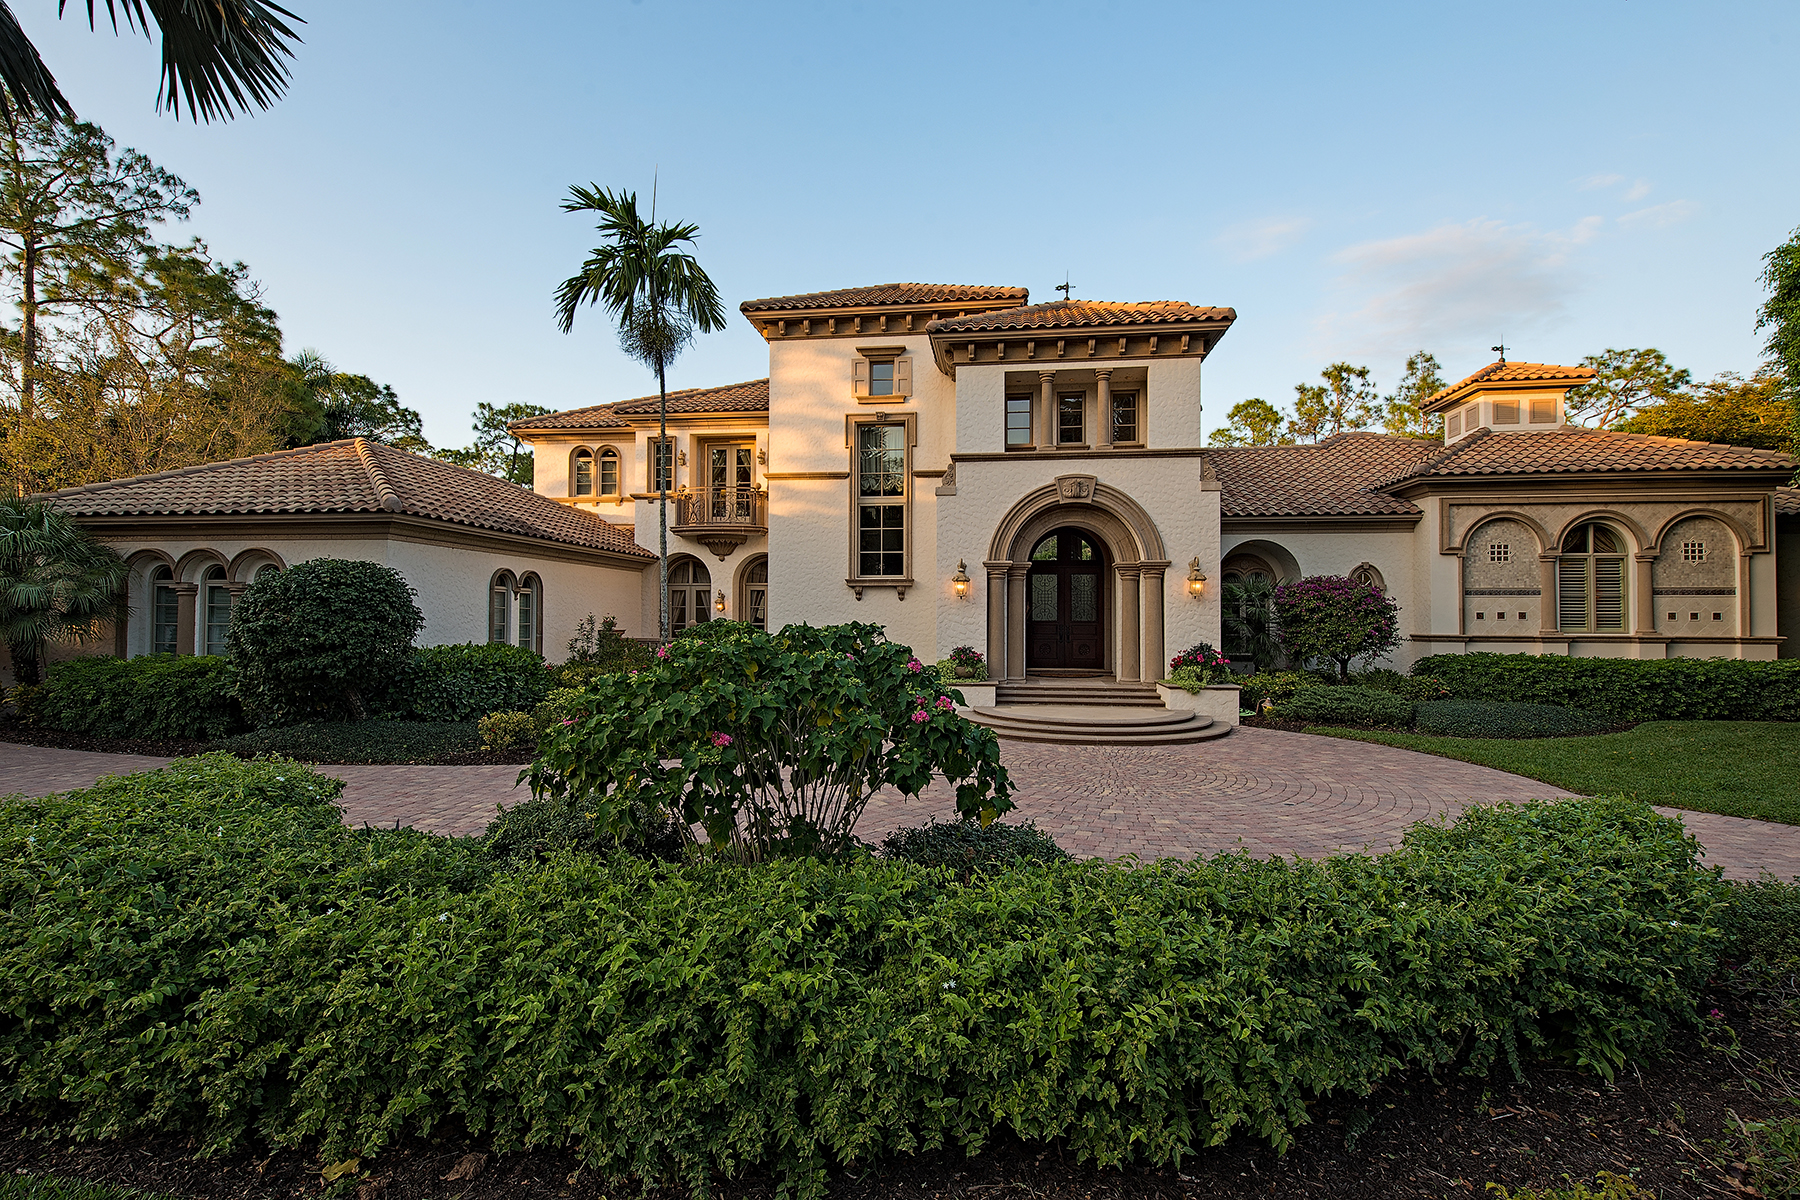 Single Family Home for Rent at QUAIL WEST - QUAIL WEST 6529 Highcroft Dr, Naples, Florida 34119 United States